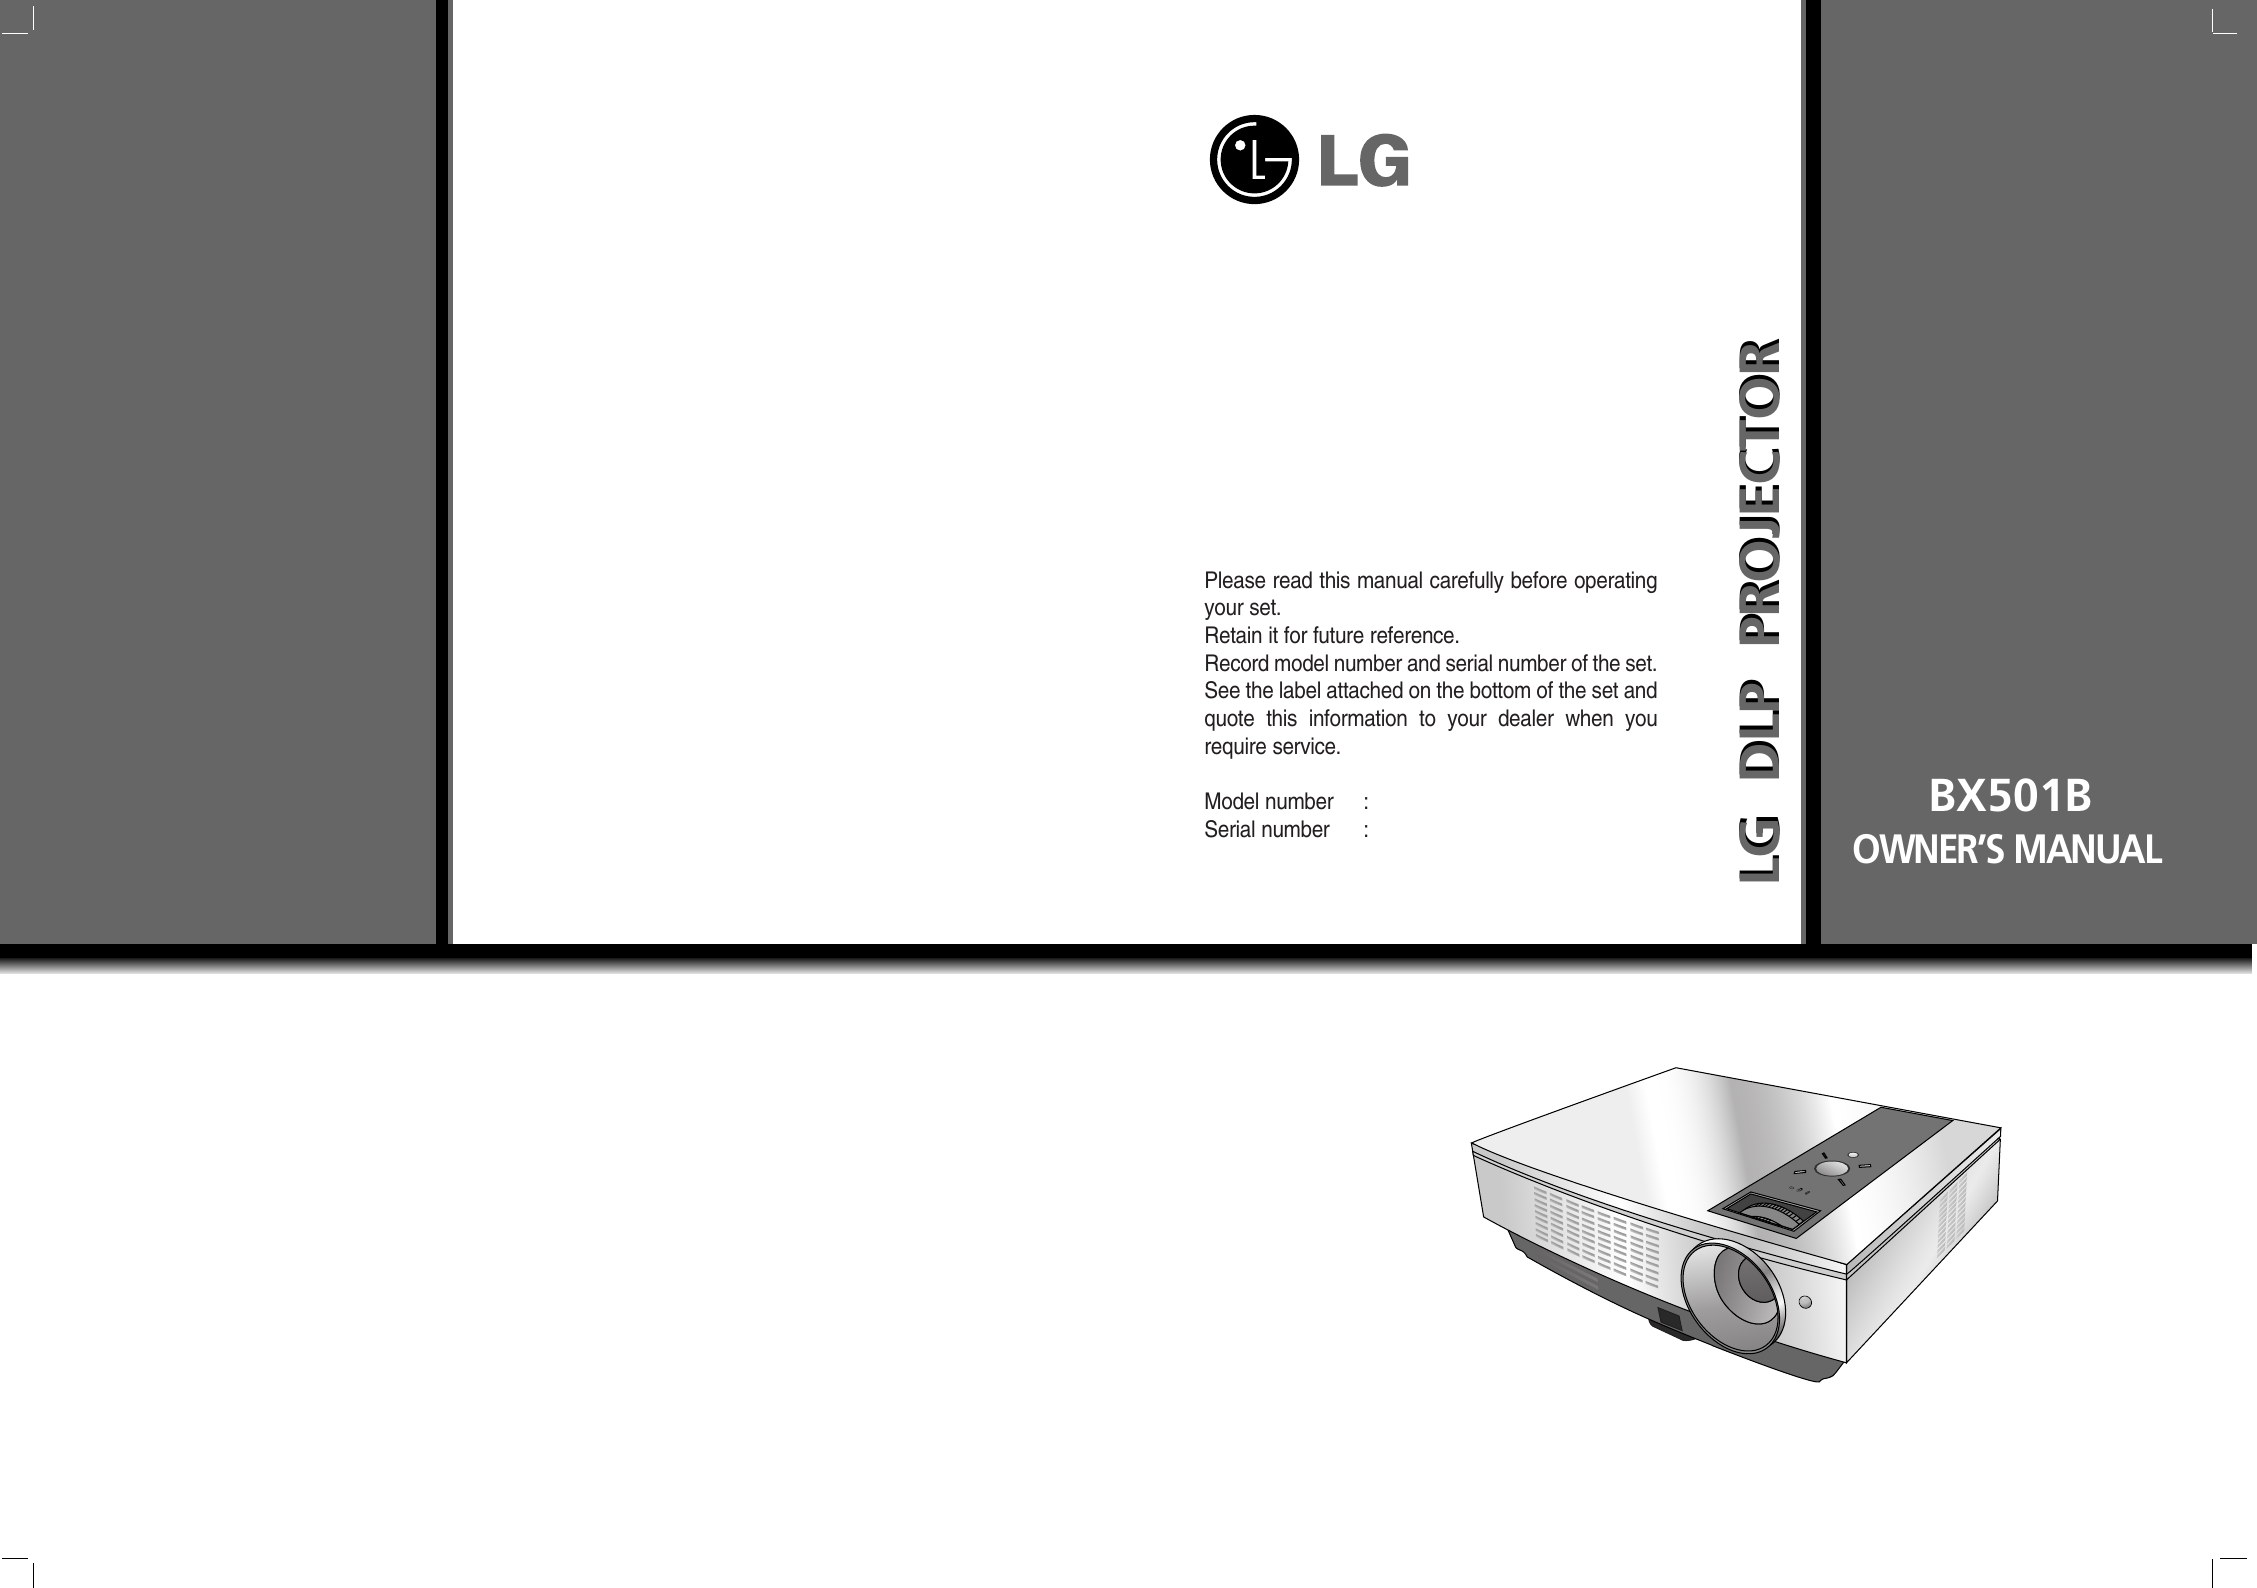 Lg Bx501b Owner S Manual 6013en Possibly Related To Quotsimple Ac Light Bulb Flasherquot Circuits